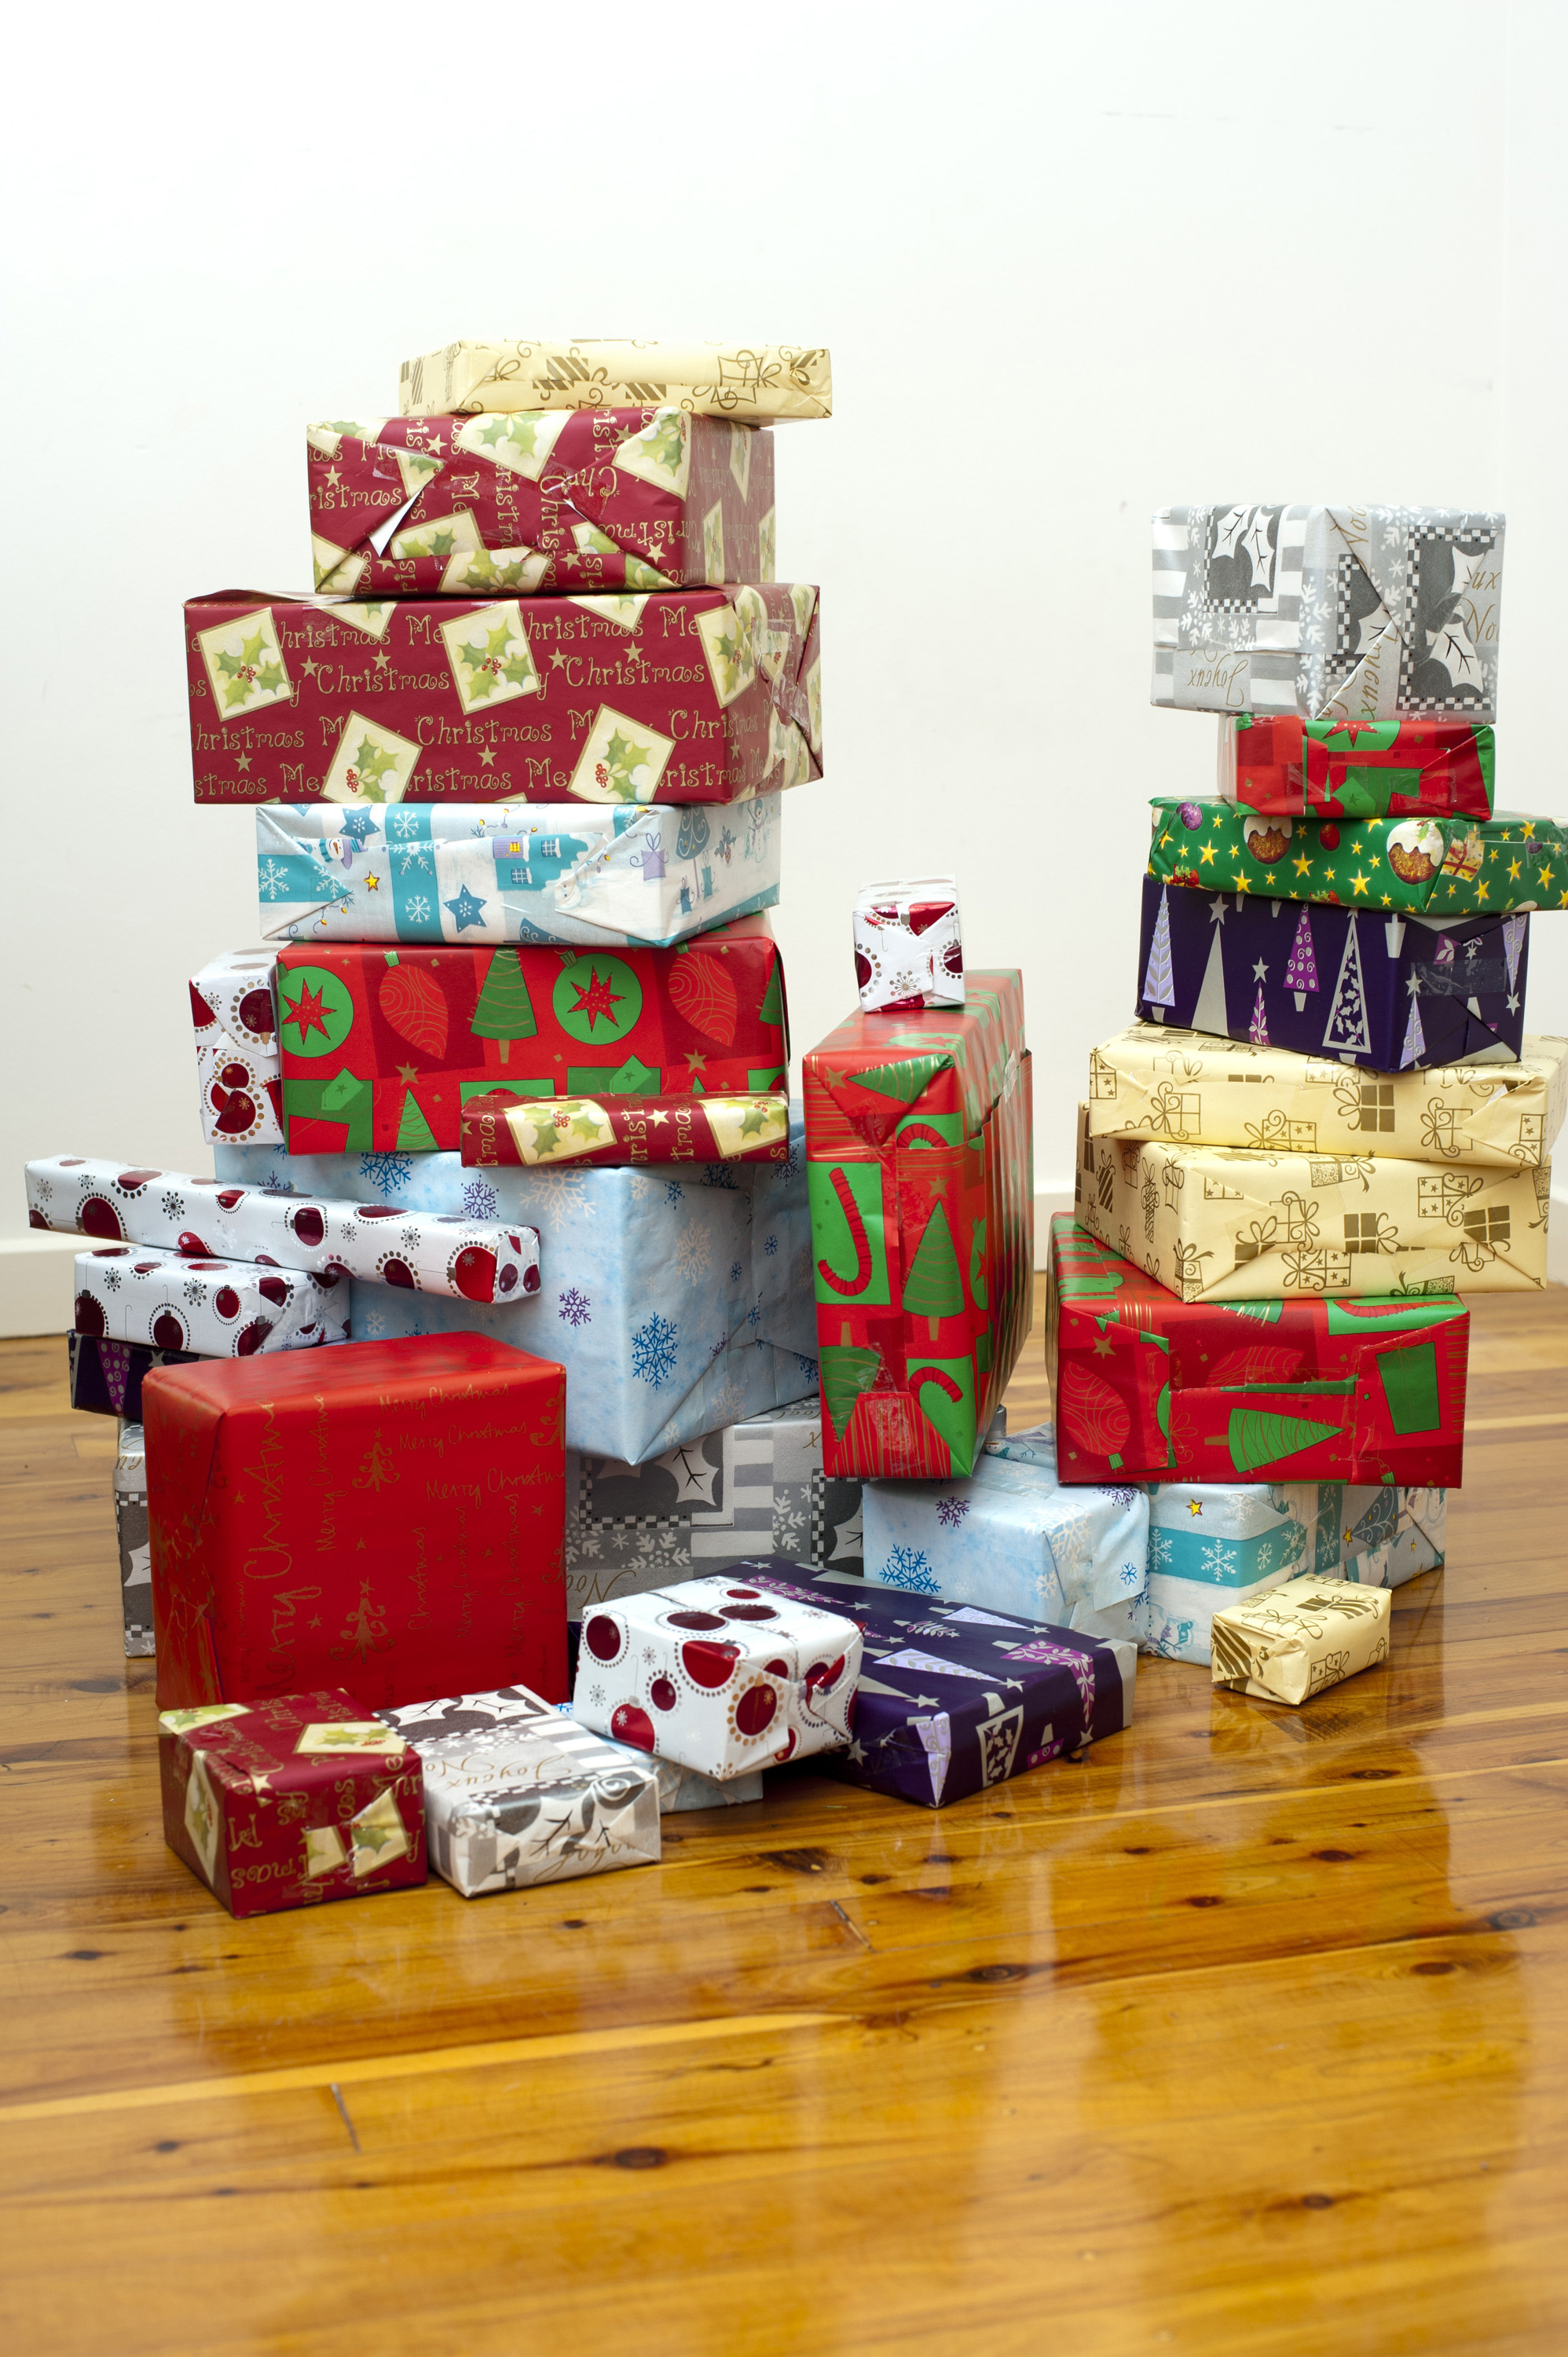 Stacks of colourful Christmas Gifts for the family piled on a polished hardwood floor waiting for Christmas Eve and the coming of Santa Claus